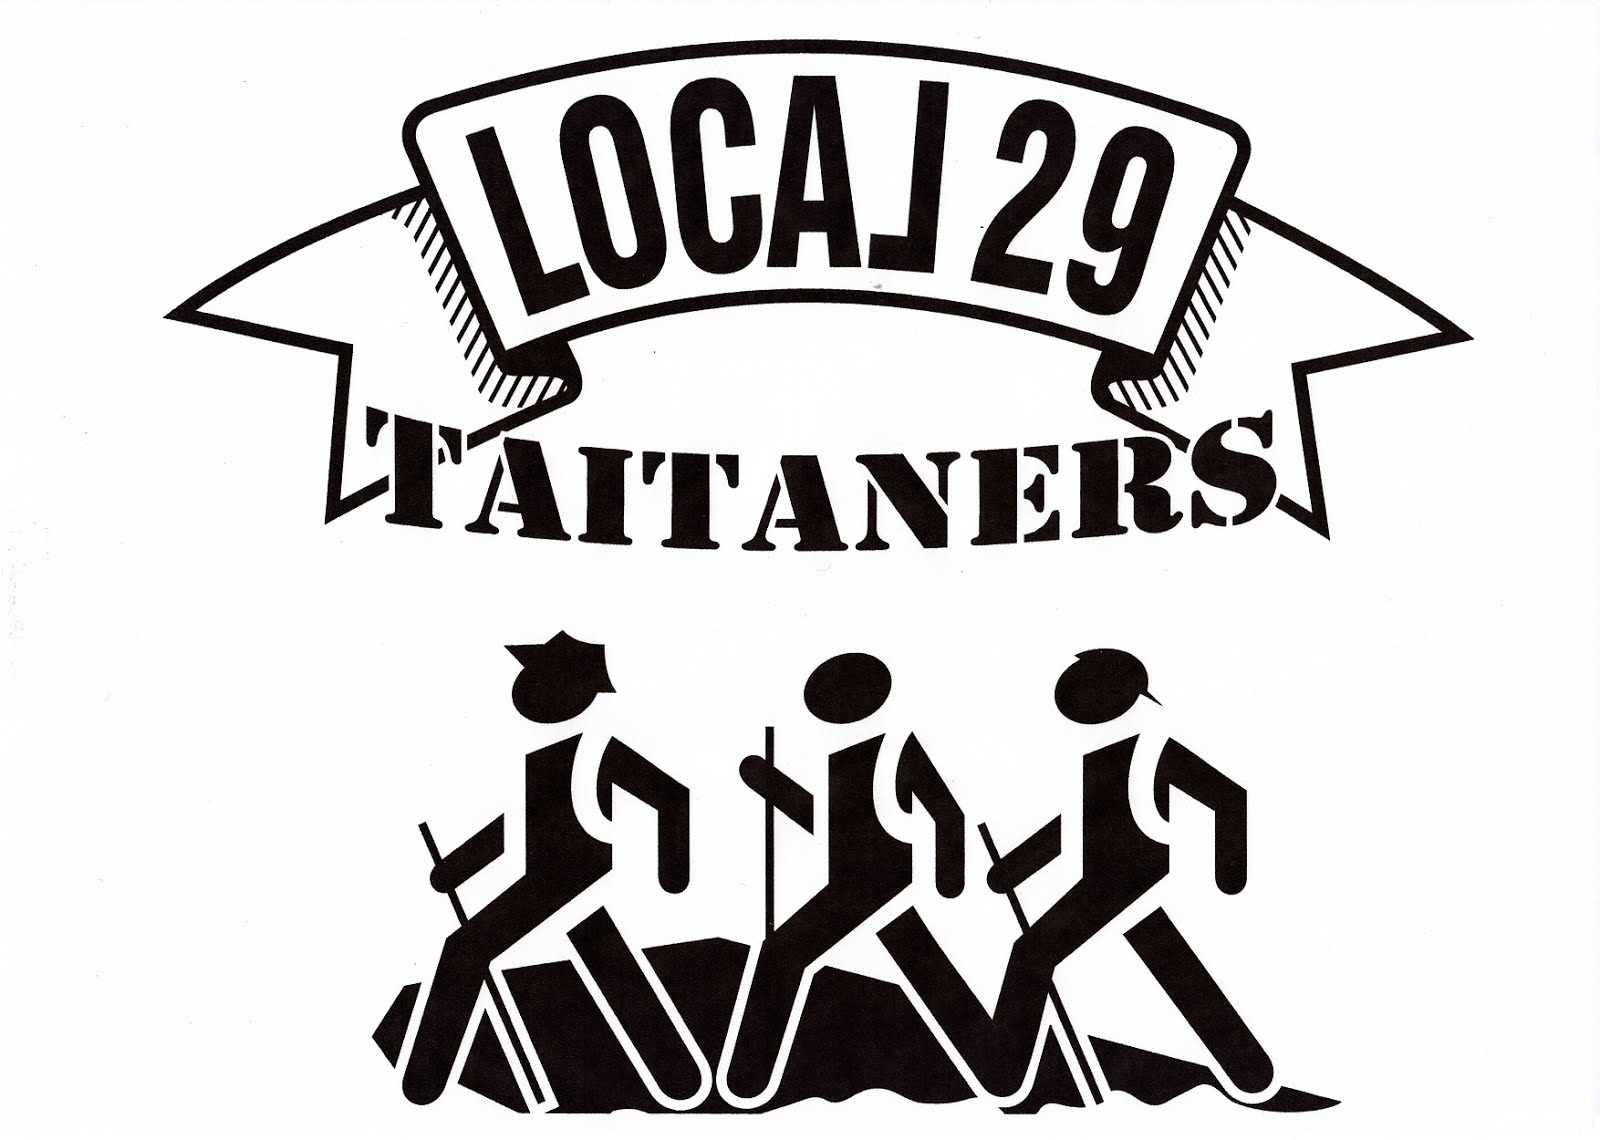 LOCAL29 TAITANERS